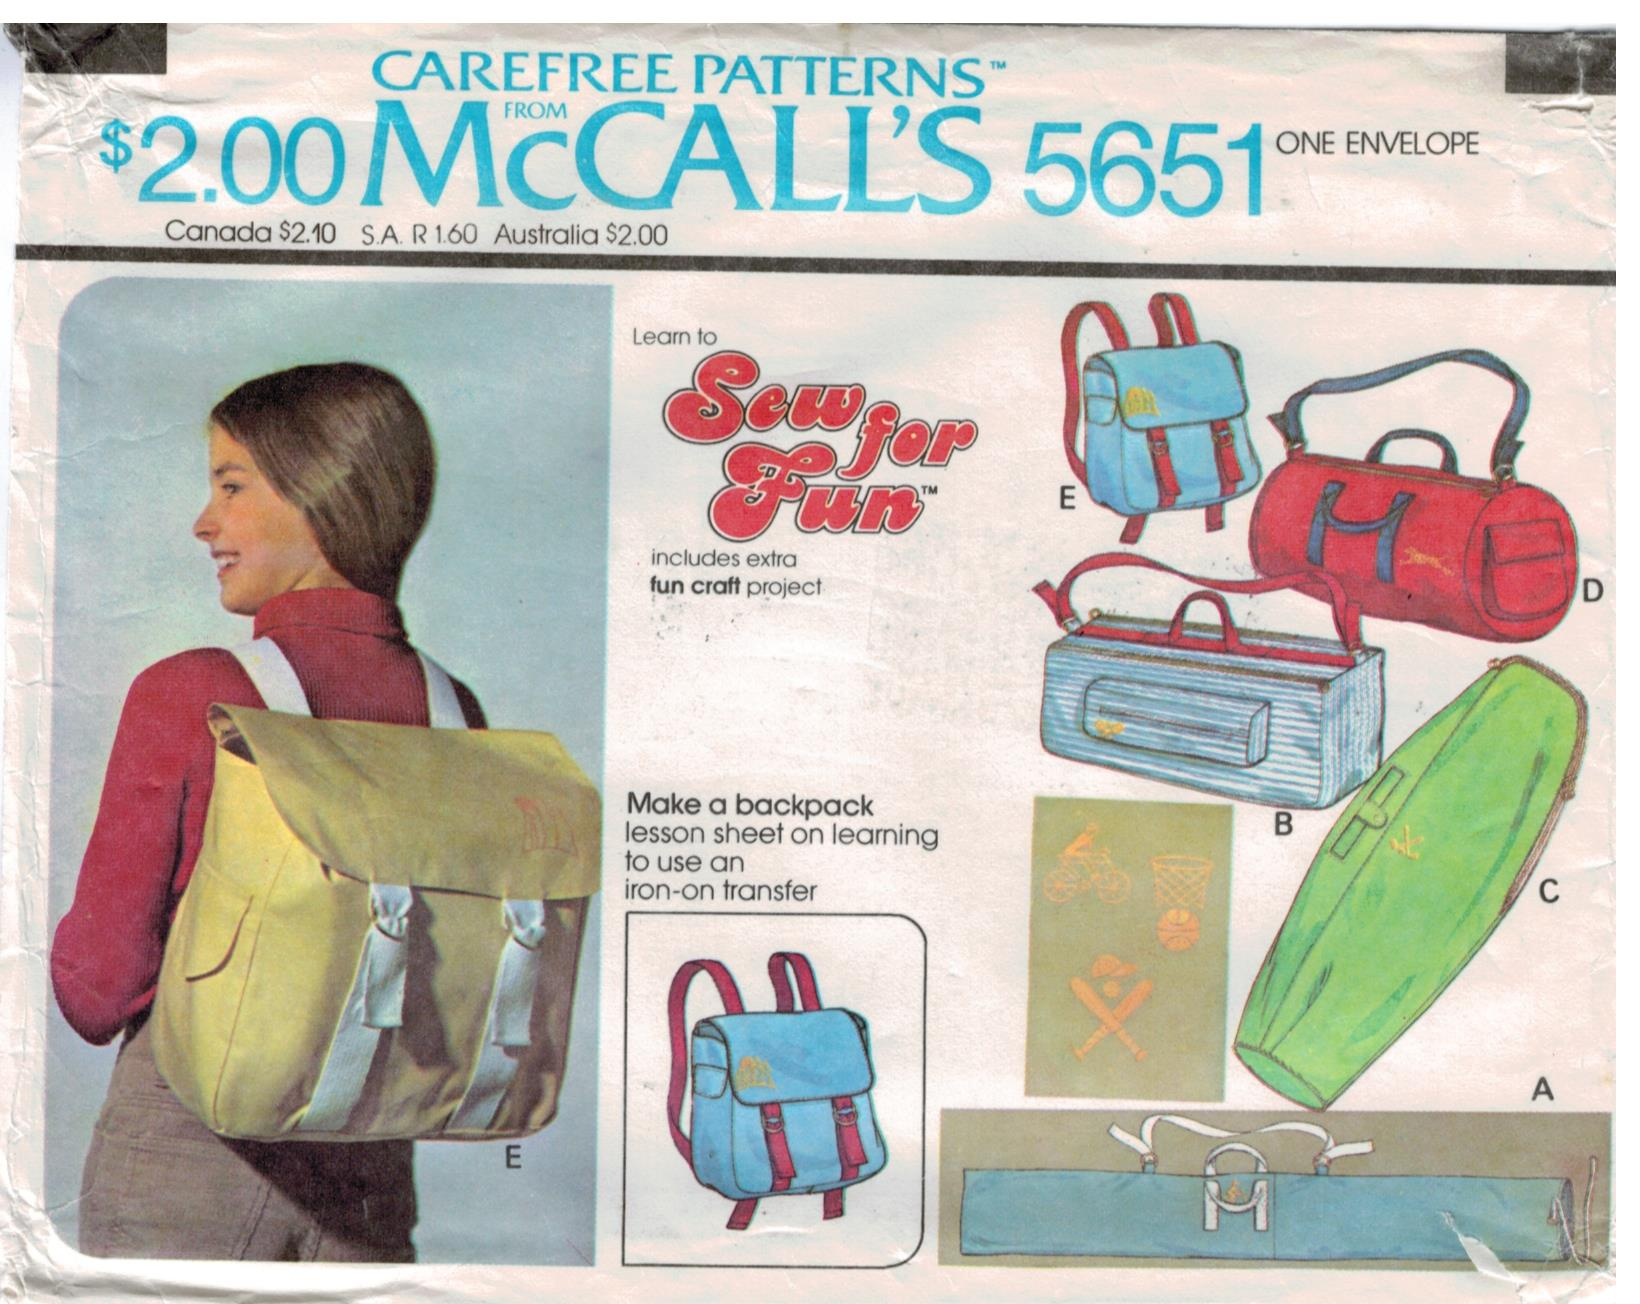 Mccalls pattern 5651 carry on backpack tote golf and tennis mccalls pattern 5651 carry on backpack tote golf and tennis bags luggage vintage 1977 jeuxipadfo Choice Image